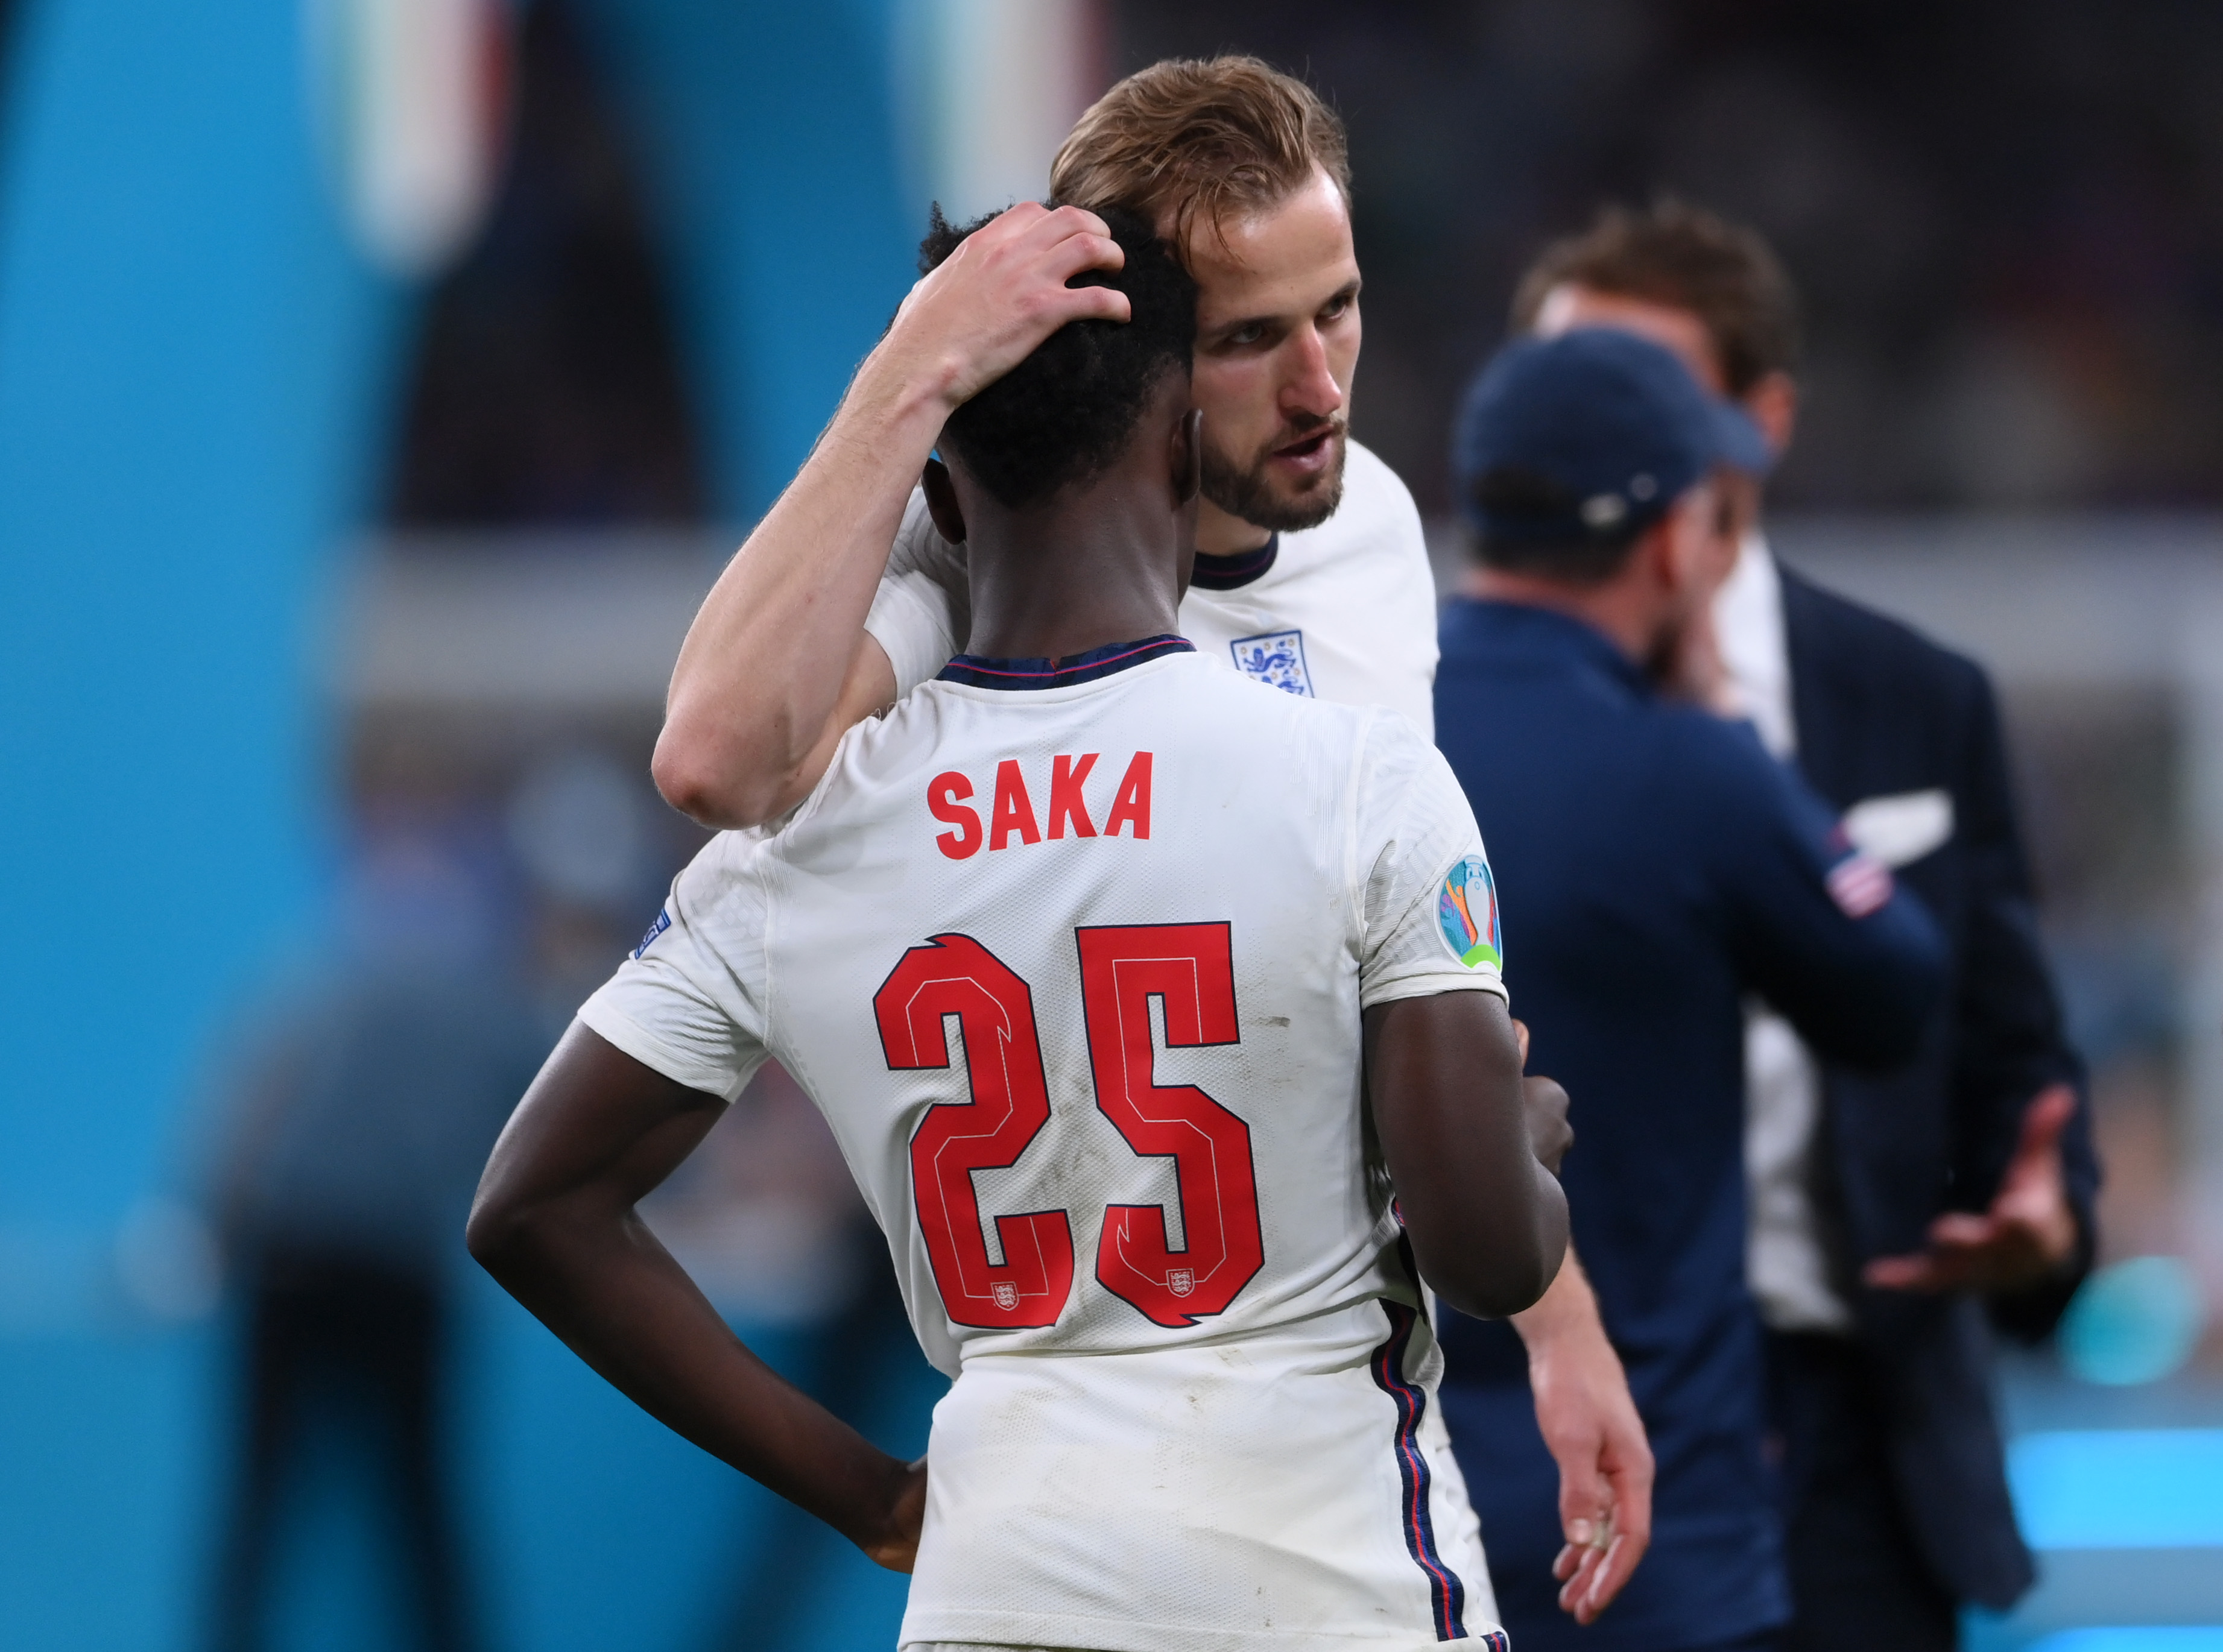 England football captain Harry Kane consoles Bukayo Saka after the team's loss in the Euro 2020 final. Photo courtesy: Twitter/@England